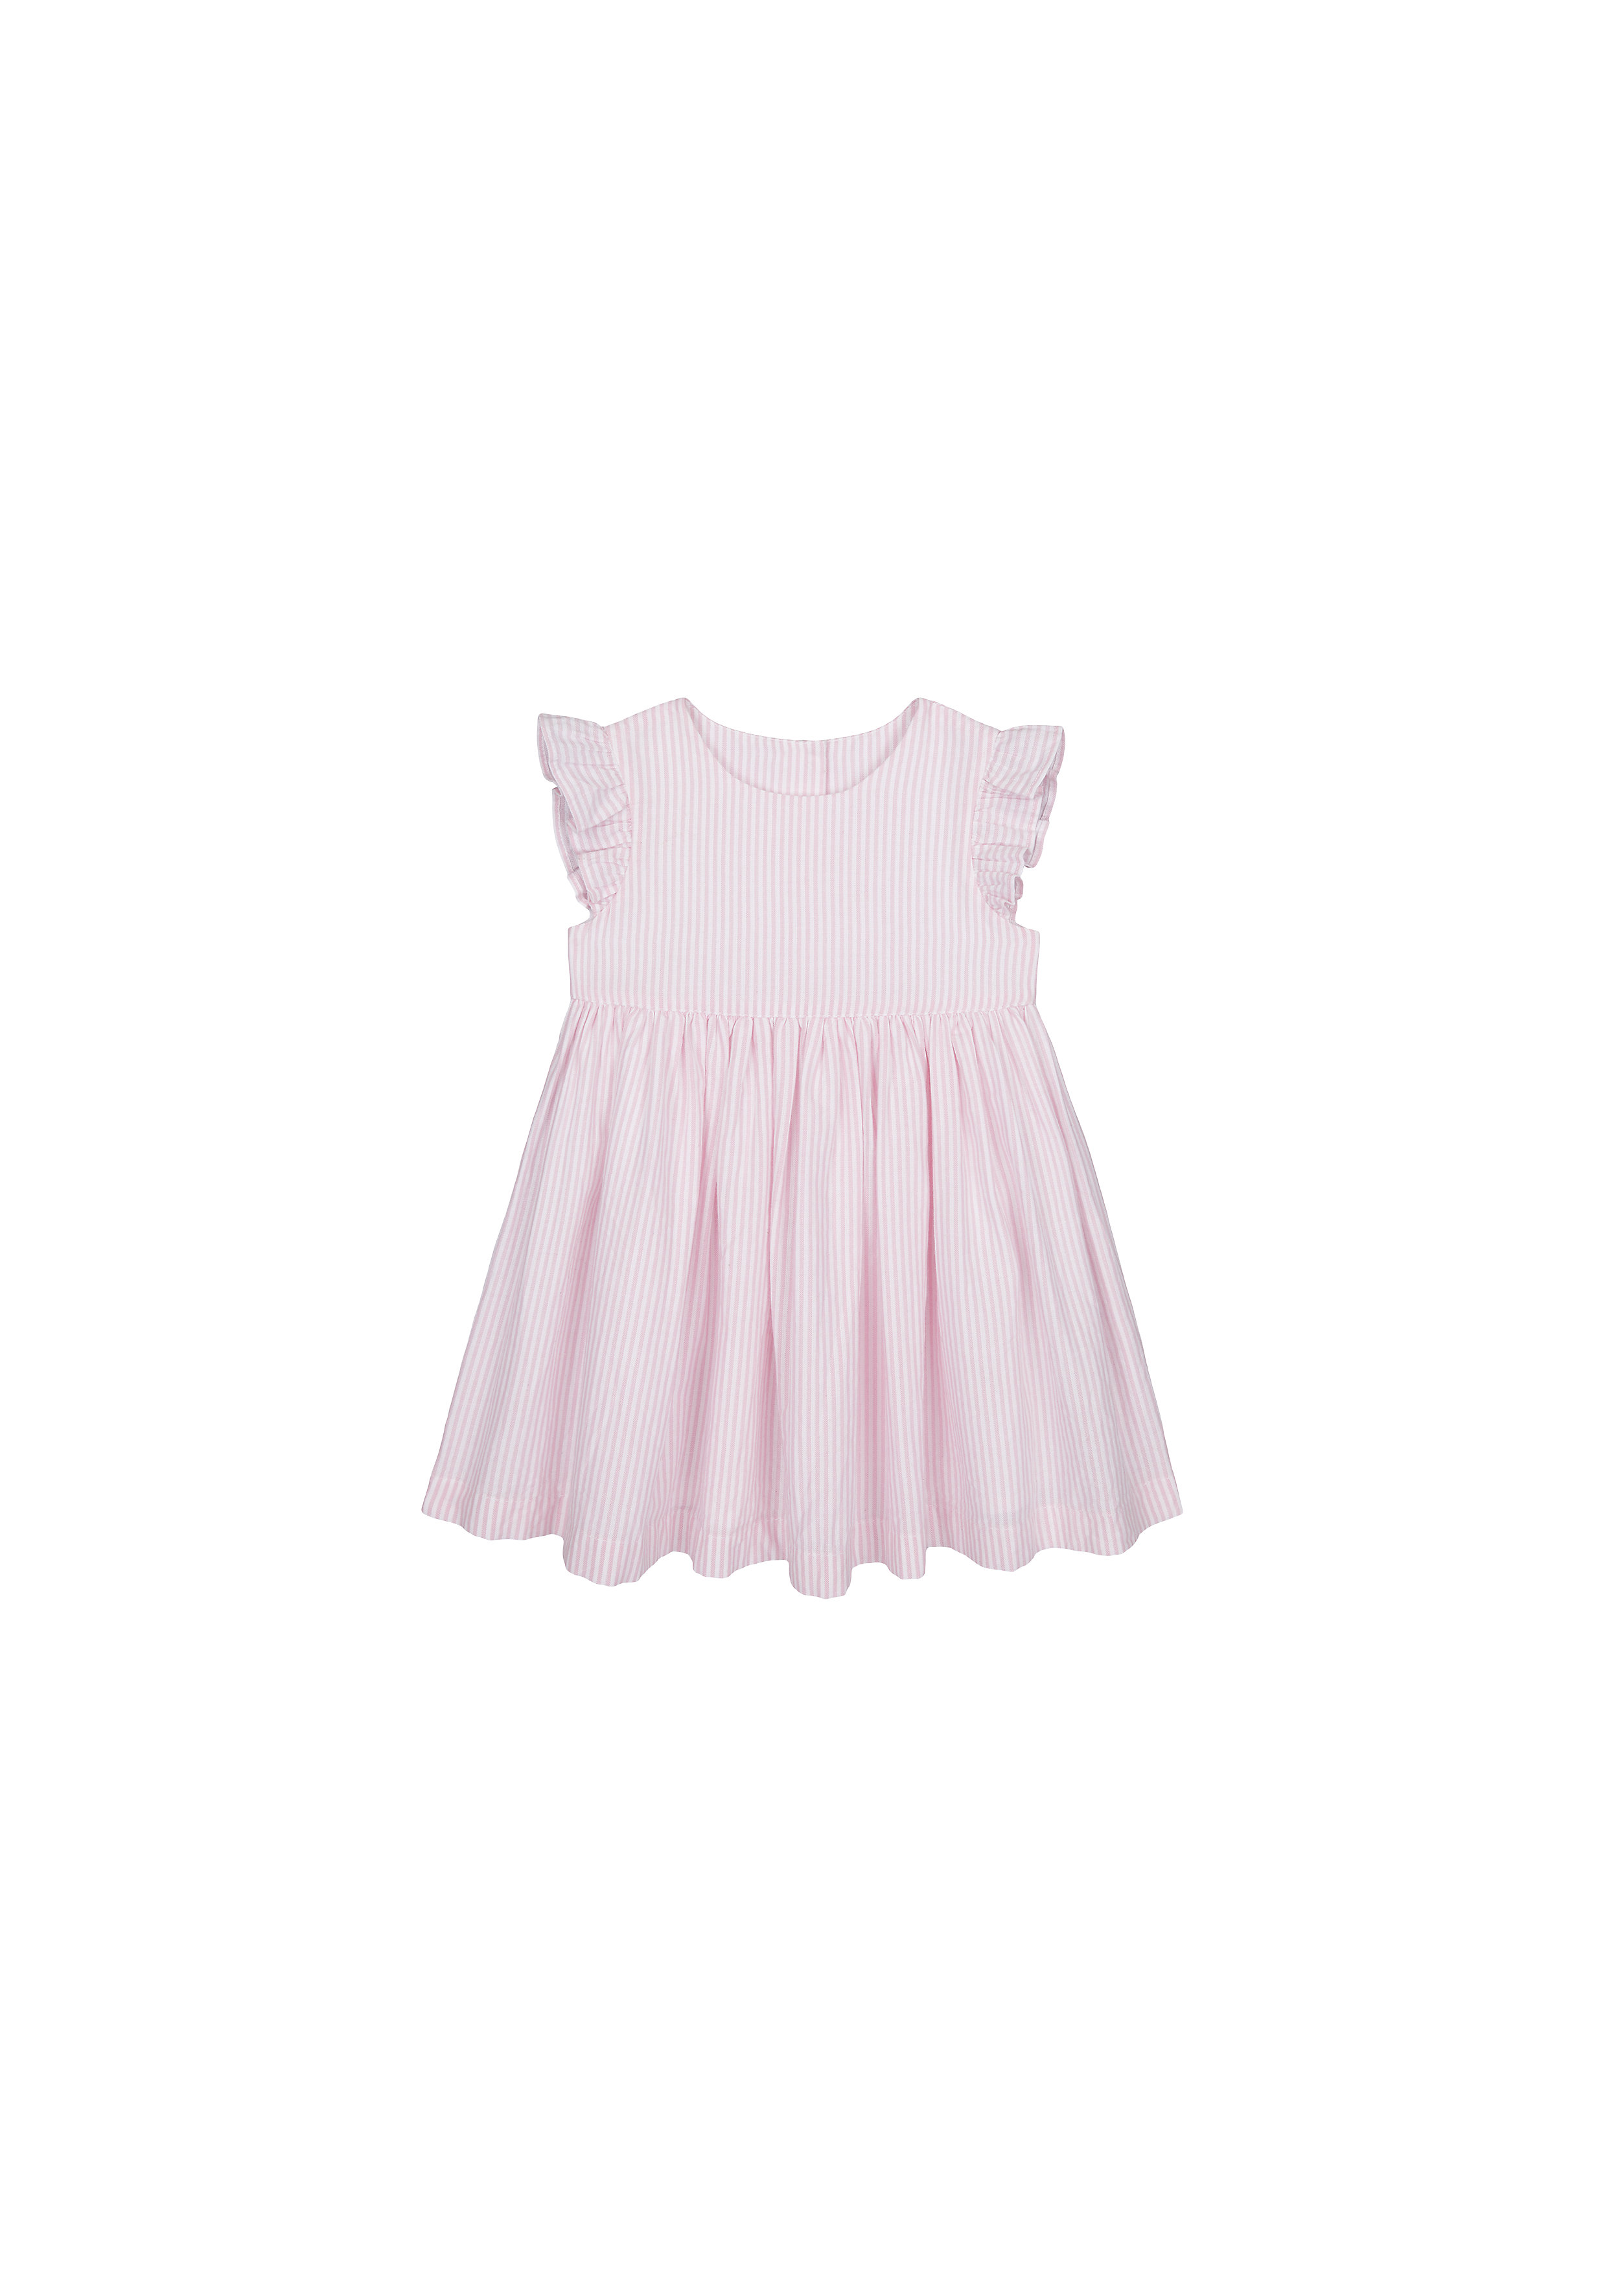 Mothercare   Girls Half Sleeves Woven Dress Striped - Pink